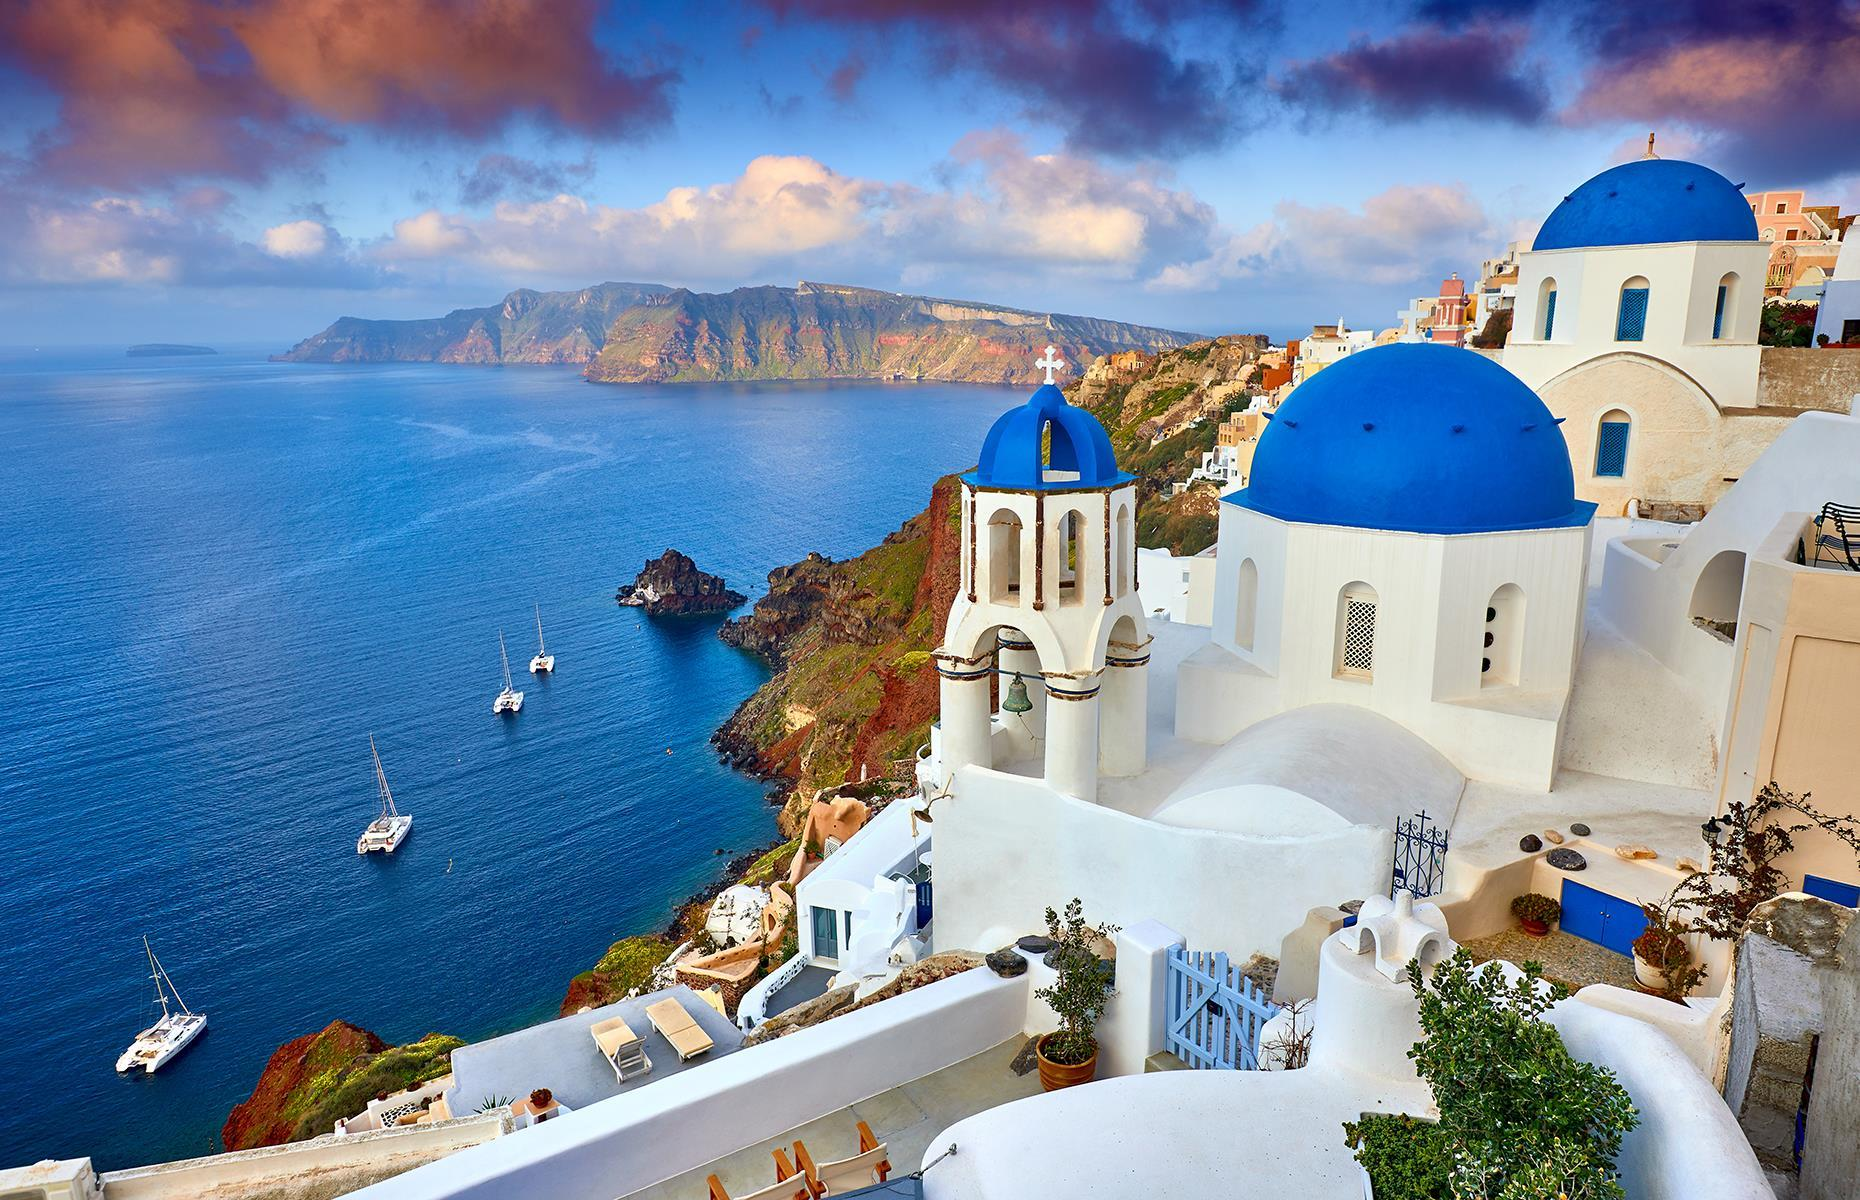 Slide 17 of 53: Known as the Queen of the Aegean, Santorini is often dubbed one of the most beautiful islands in Greece. Balmy temperatures, sugar-cube architecture and plush accommodation have enticed visitors for decades.